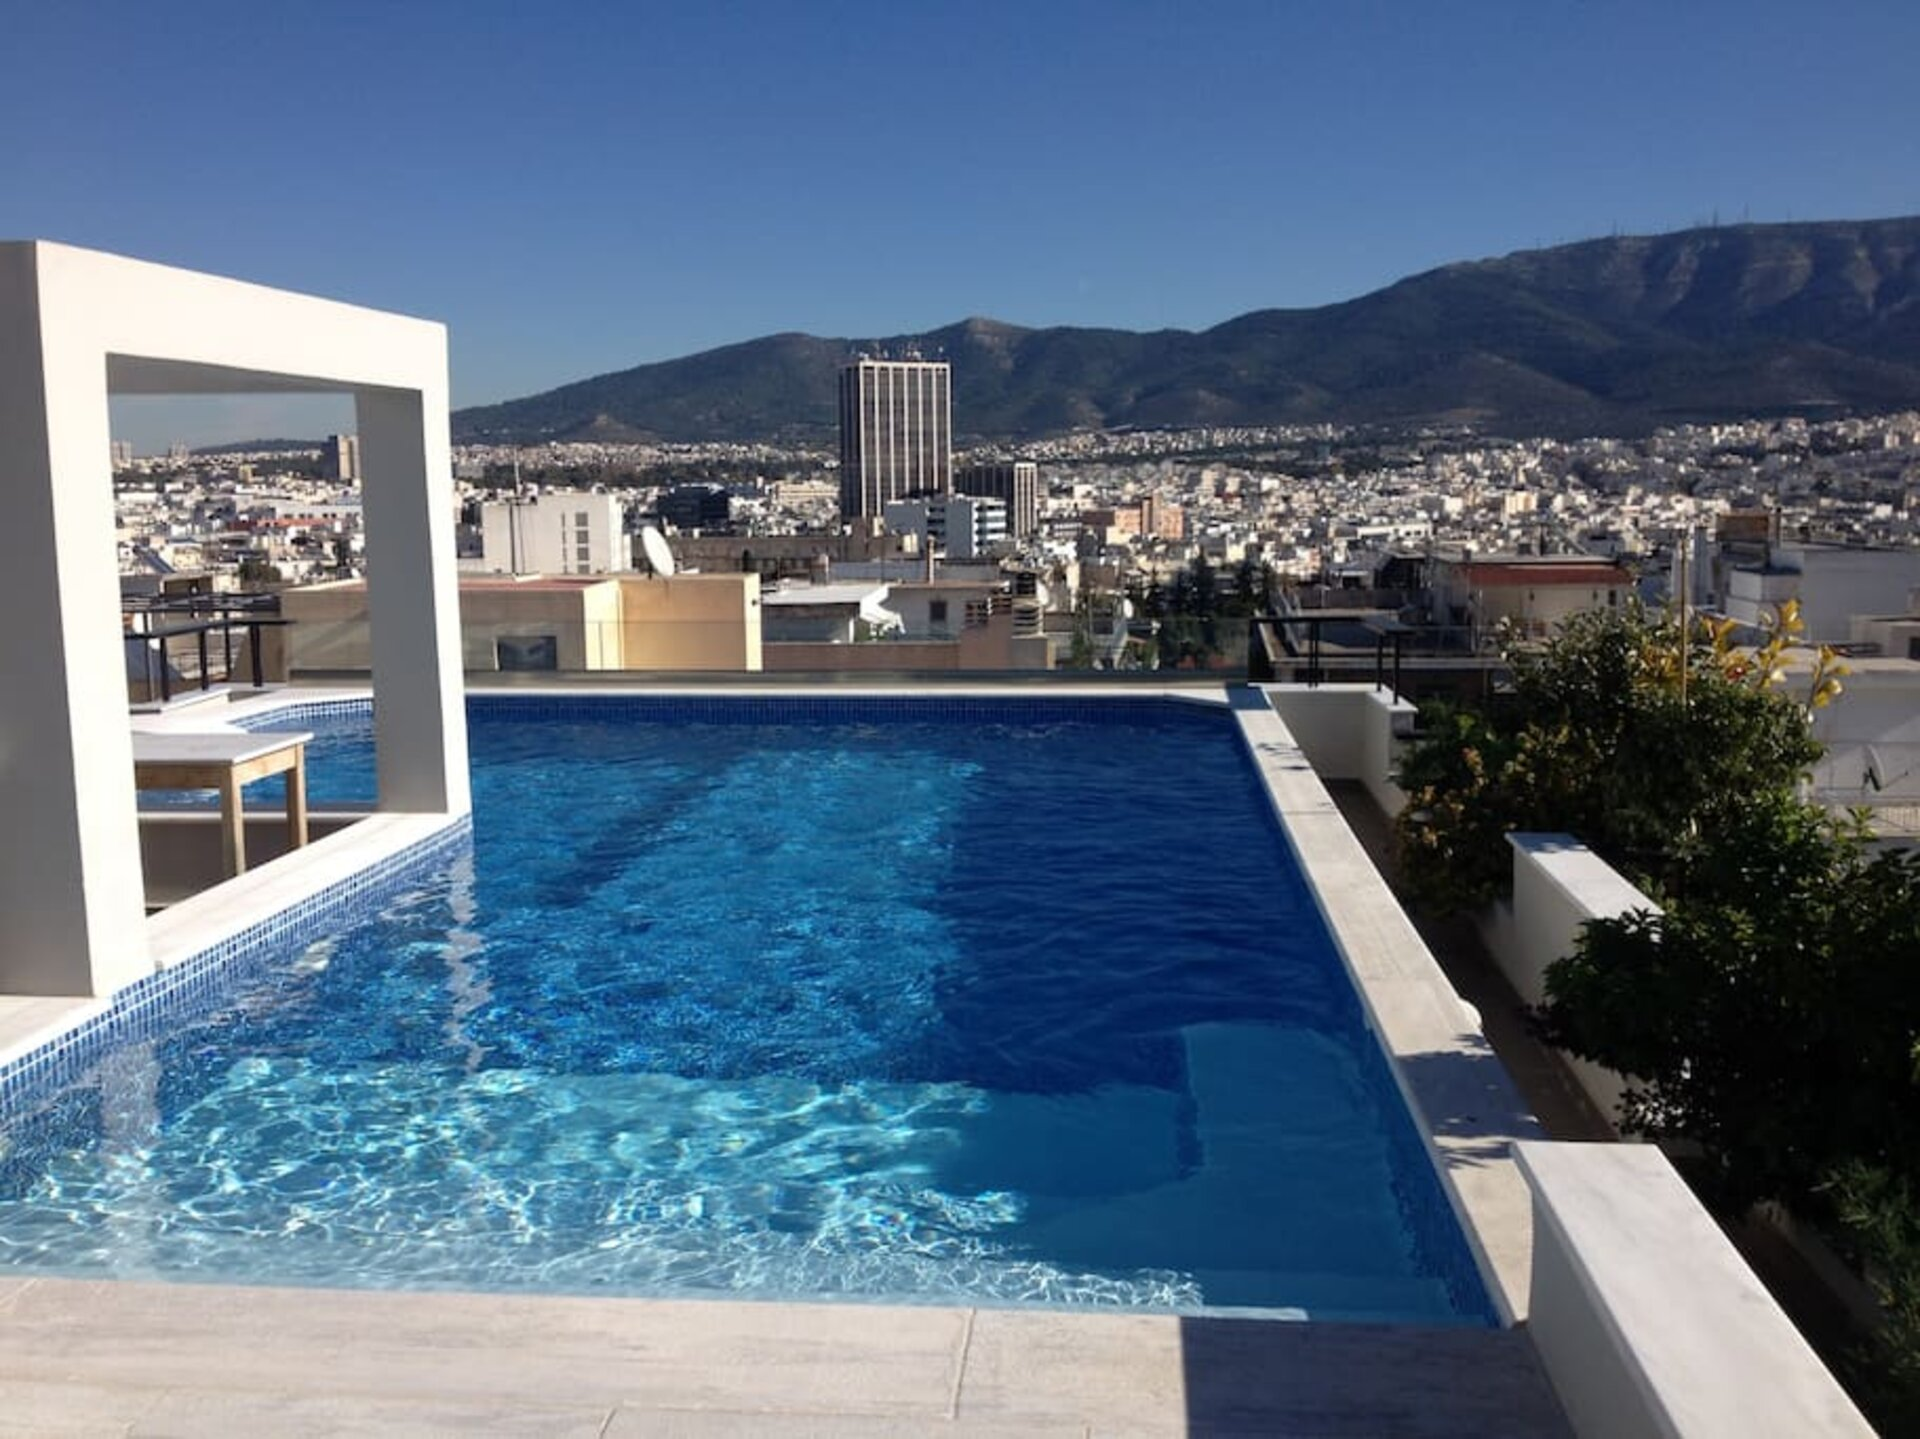 3 bedroom Flat  in Athens  RE0377